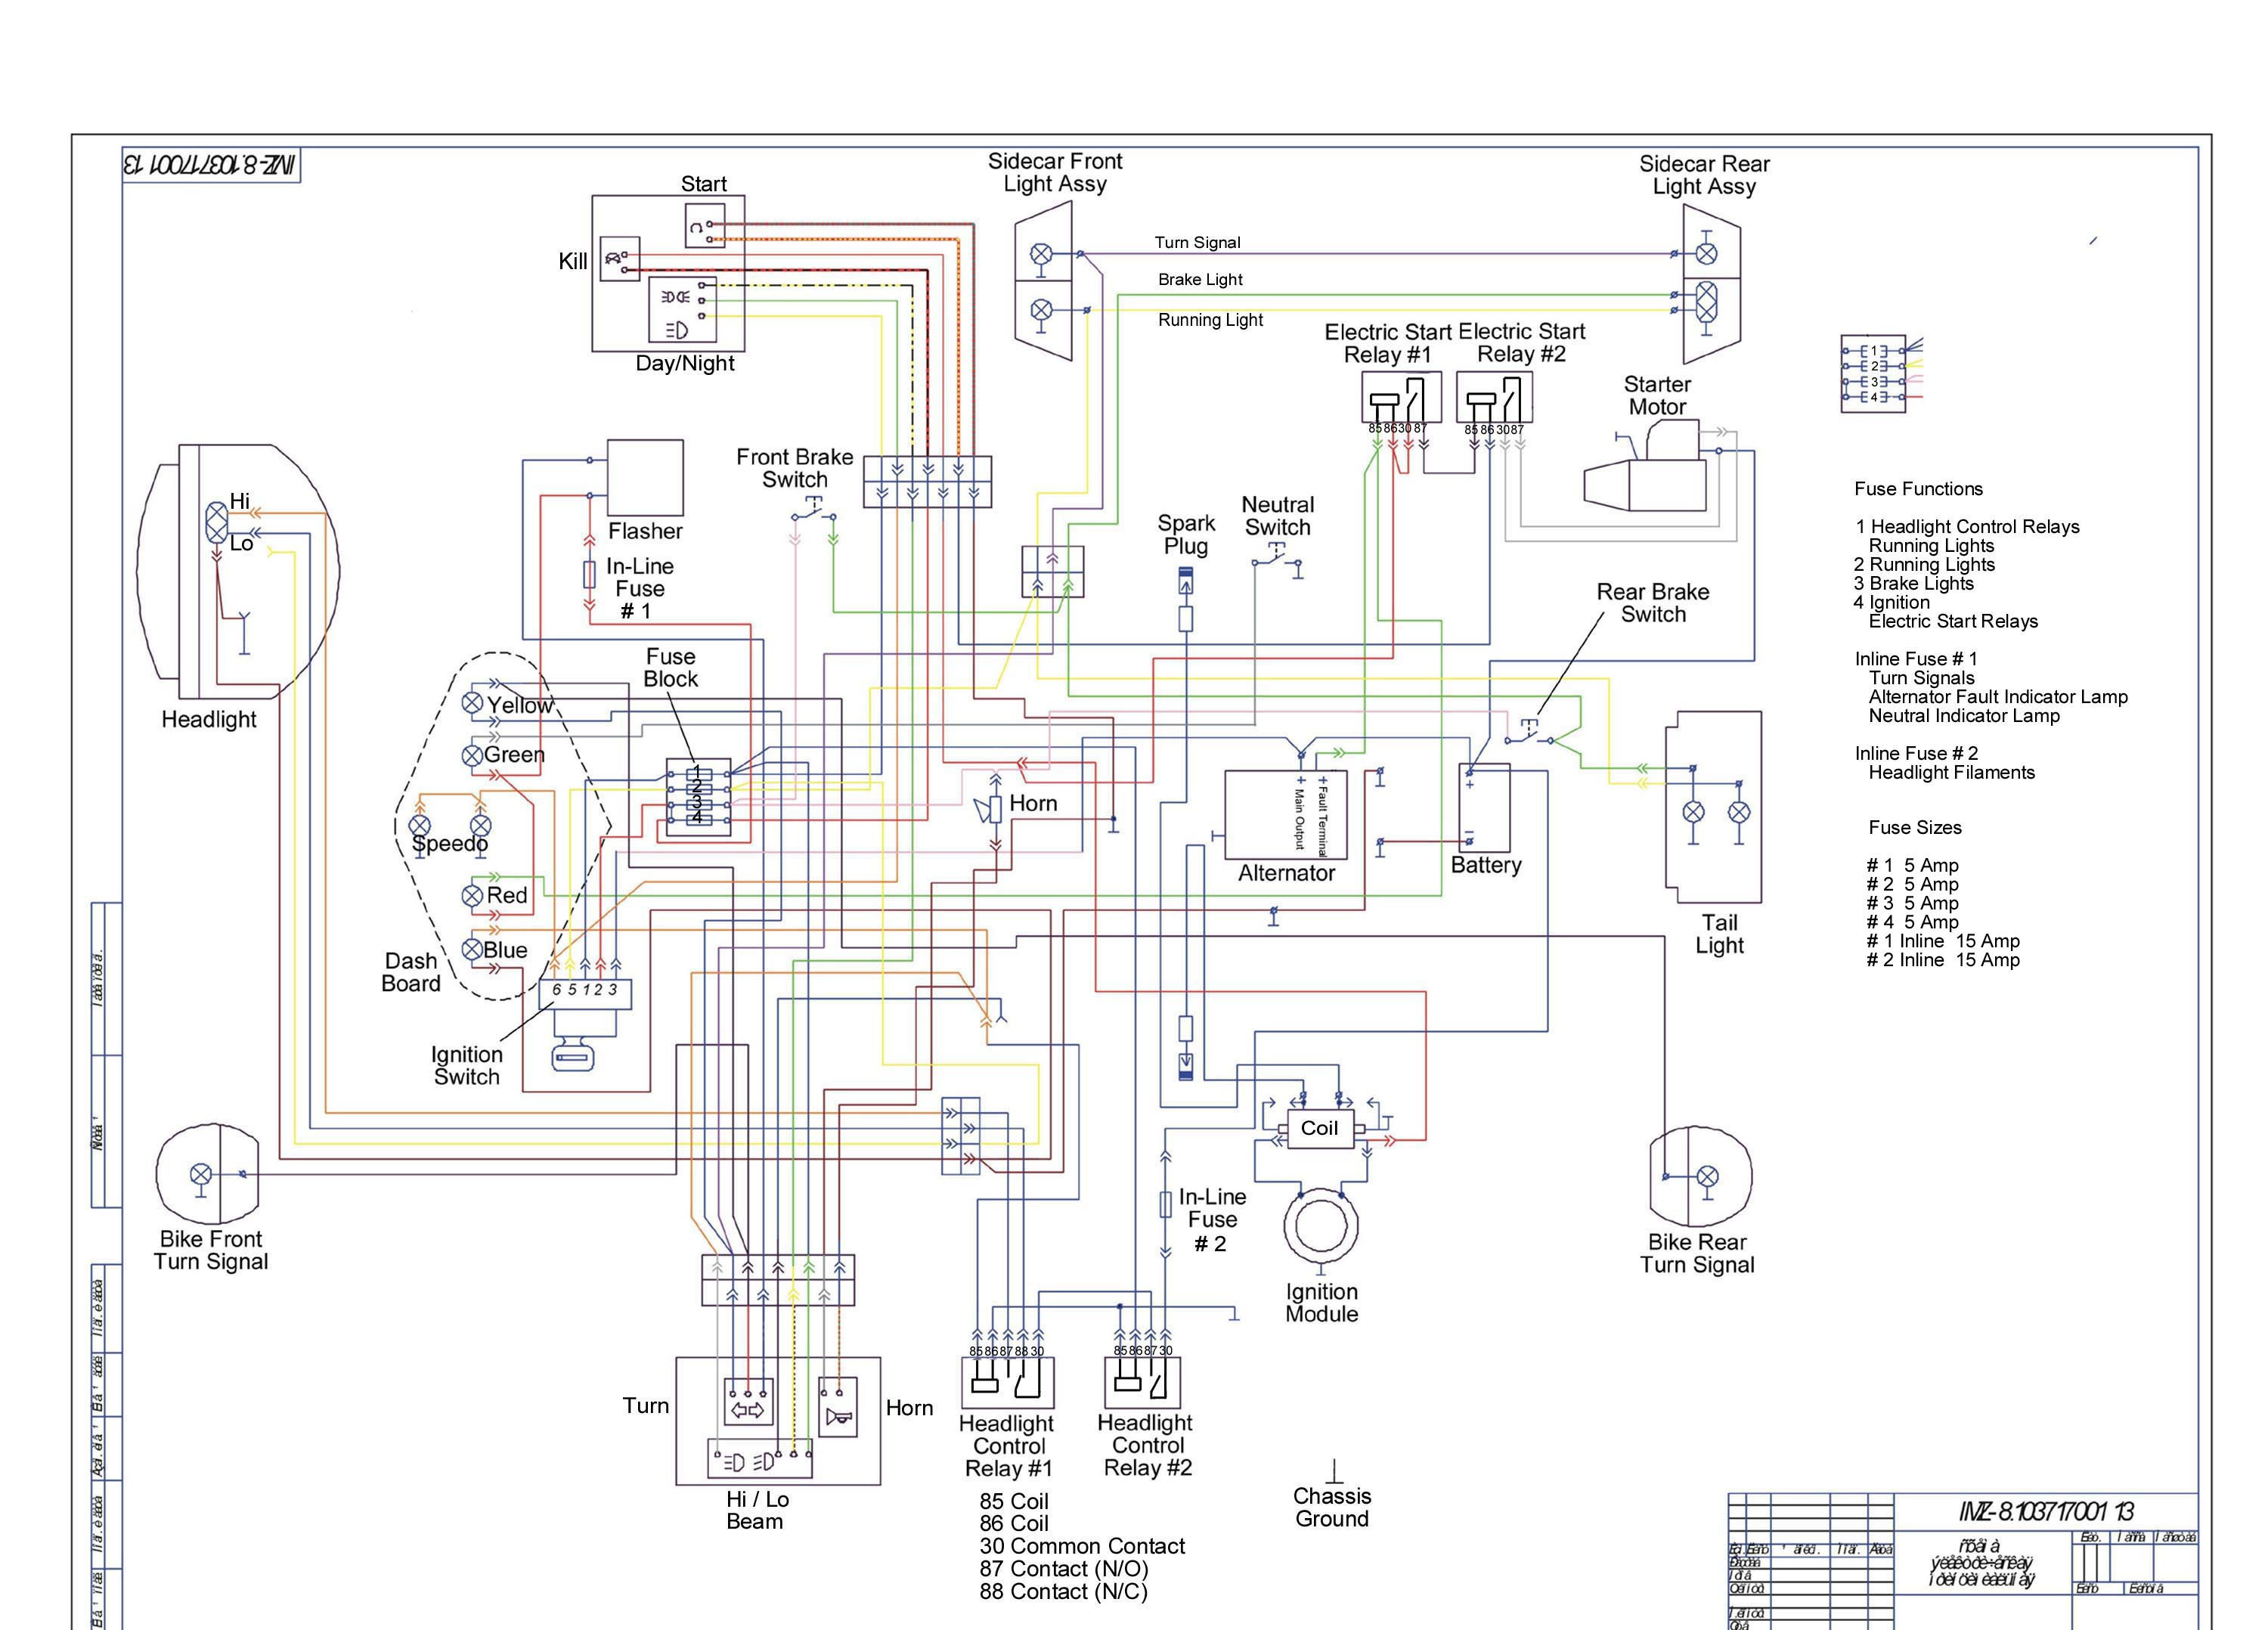 Volvo Fm Truck Wiring Diagram And Cable Harness in addition 1995 Mazda Miata Ac Diagram moreover MAZDA Car Radio Wiring Connector also Mazda Fuse Box together with Watch. on 1997 mazda b2300 fuse box diagram